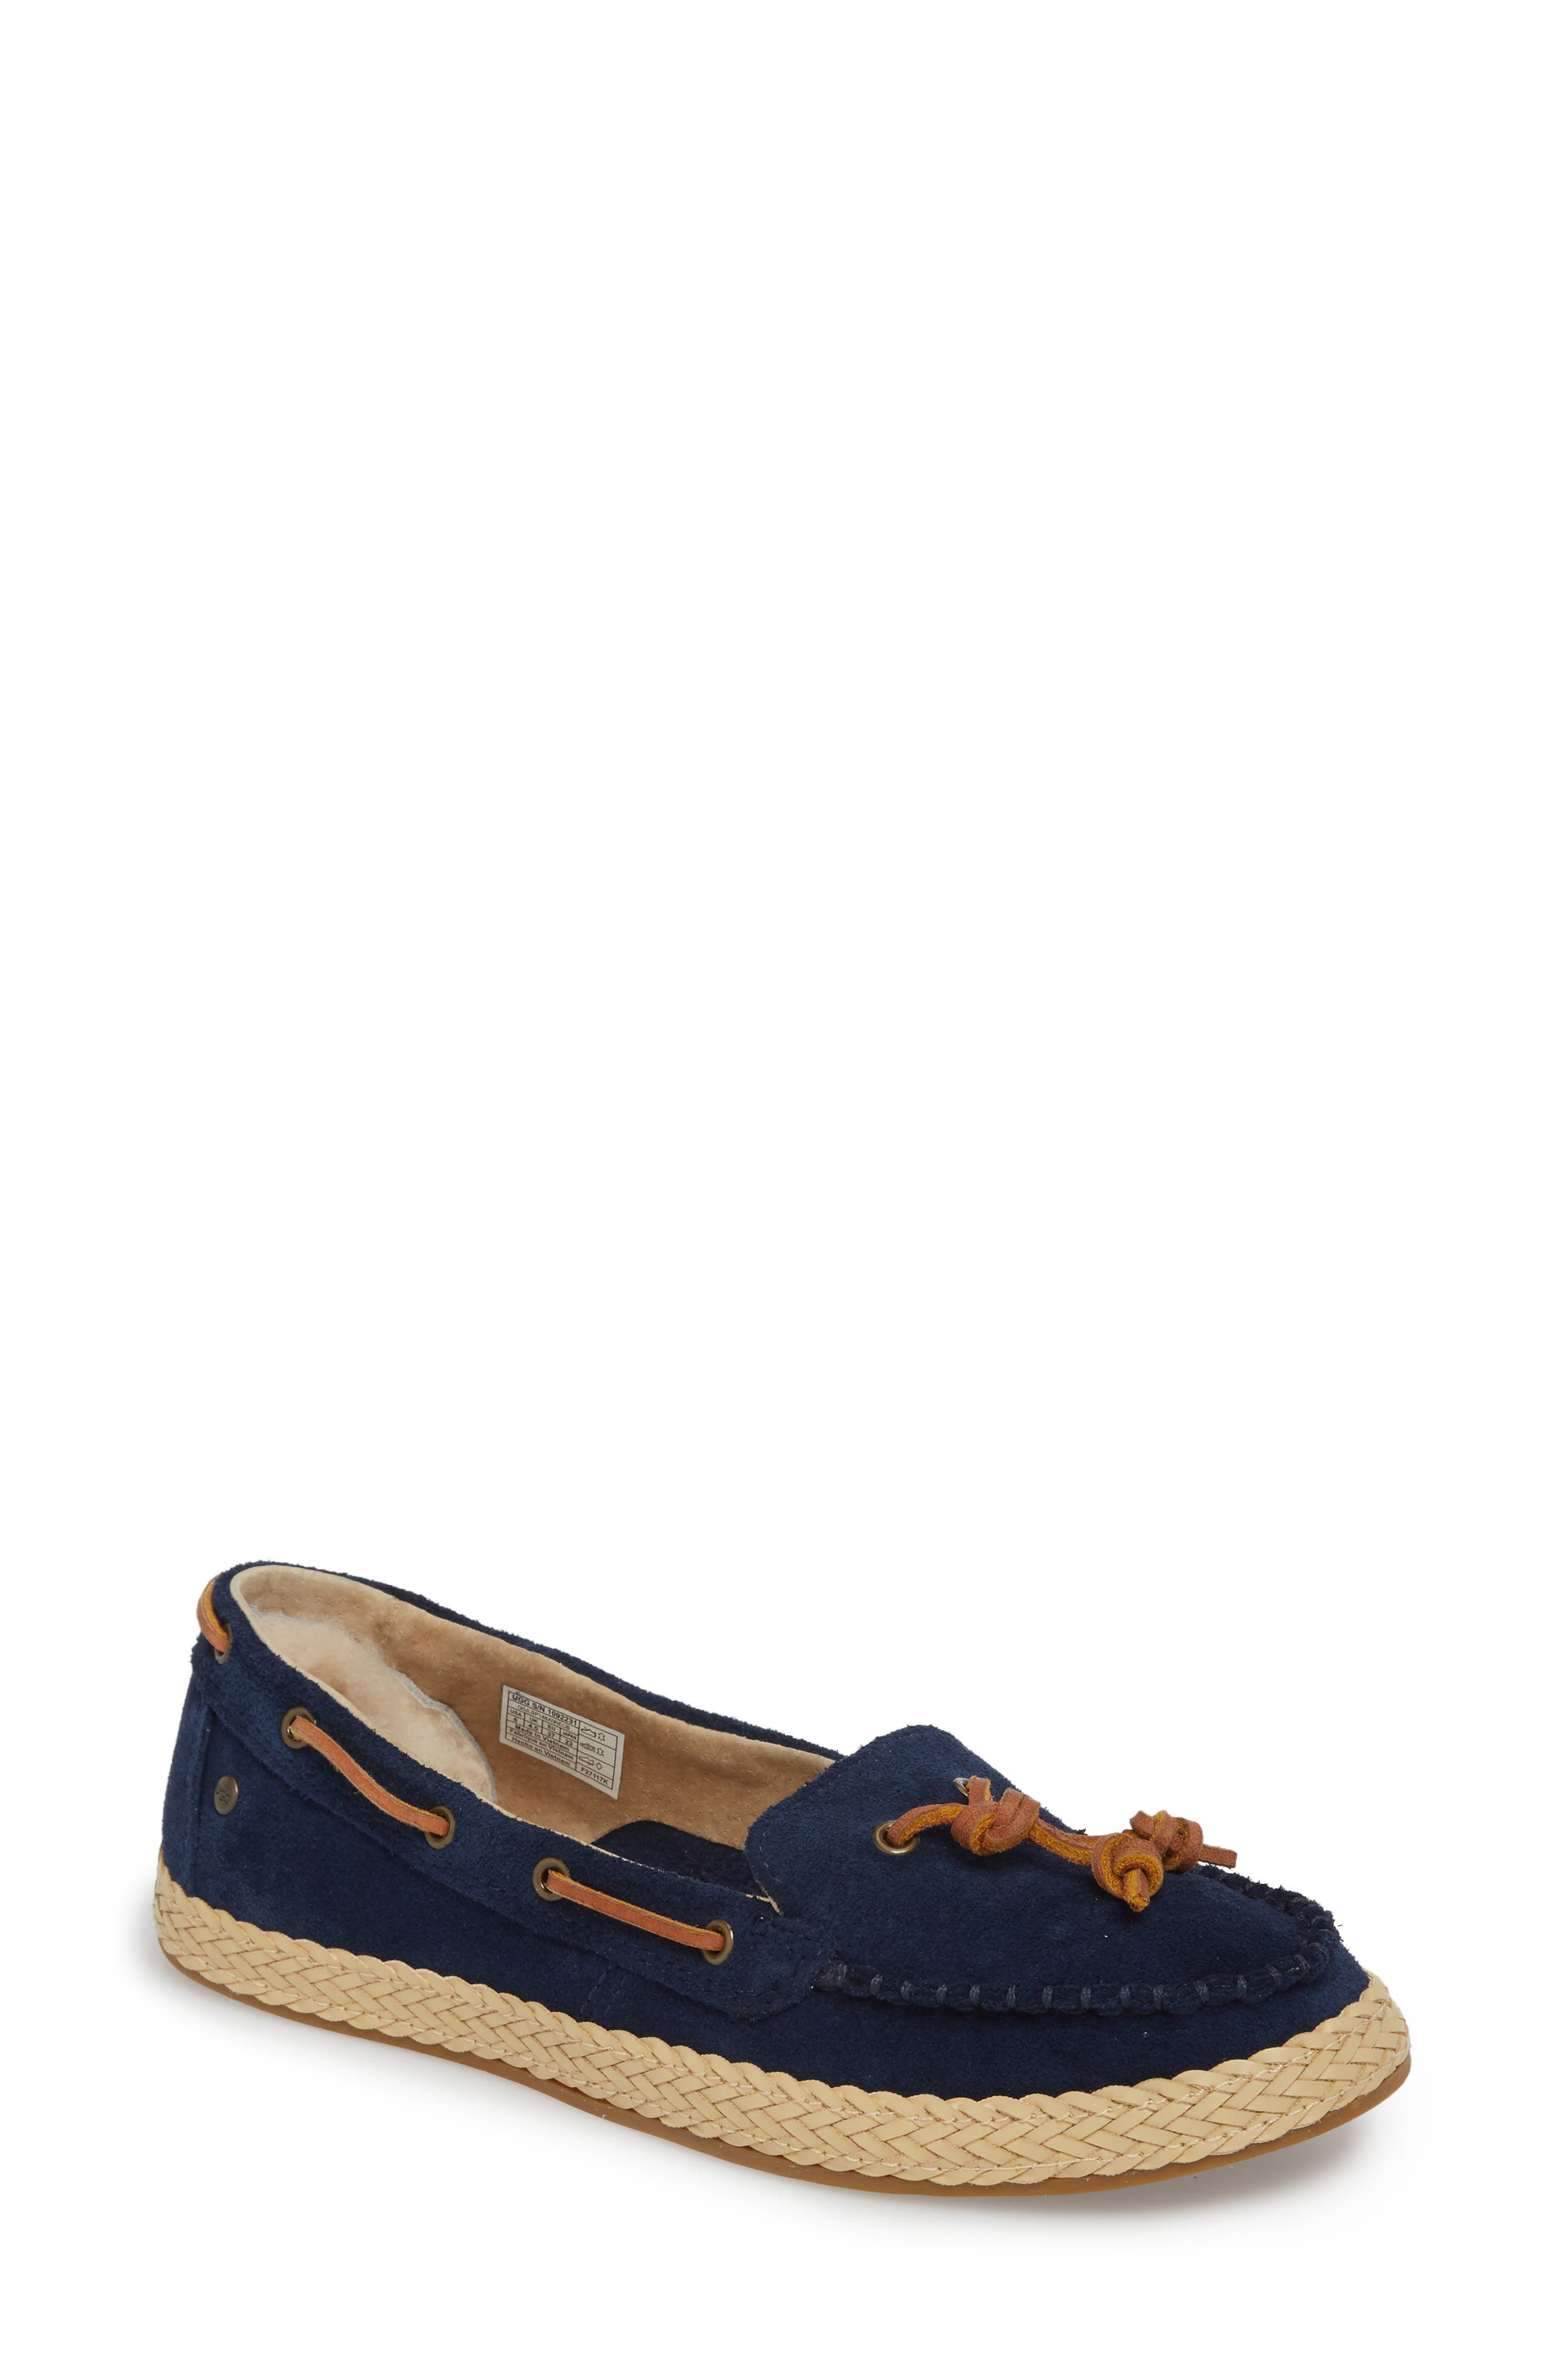 Channtal Loafer,                         Main,                         color, Navy Suede